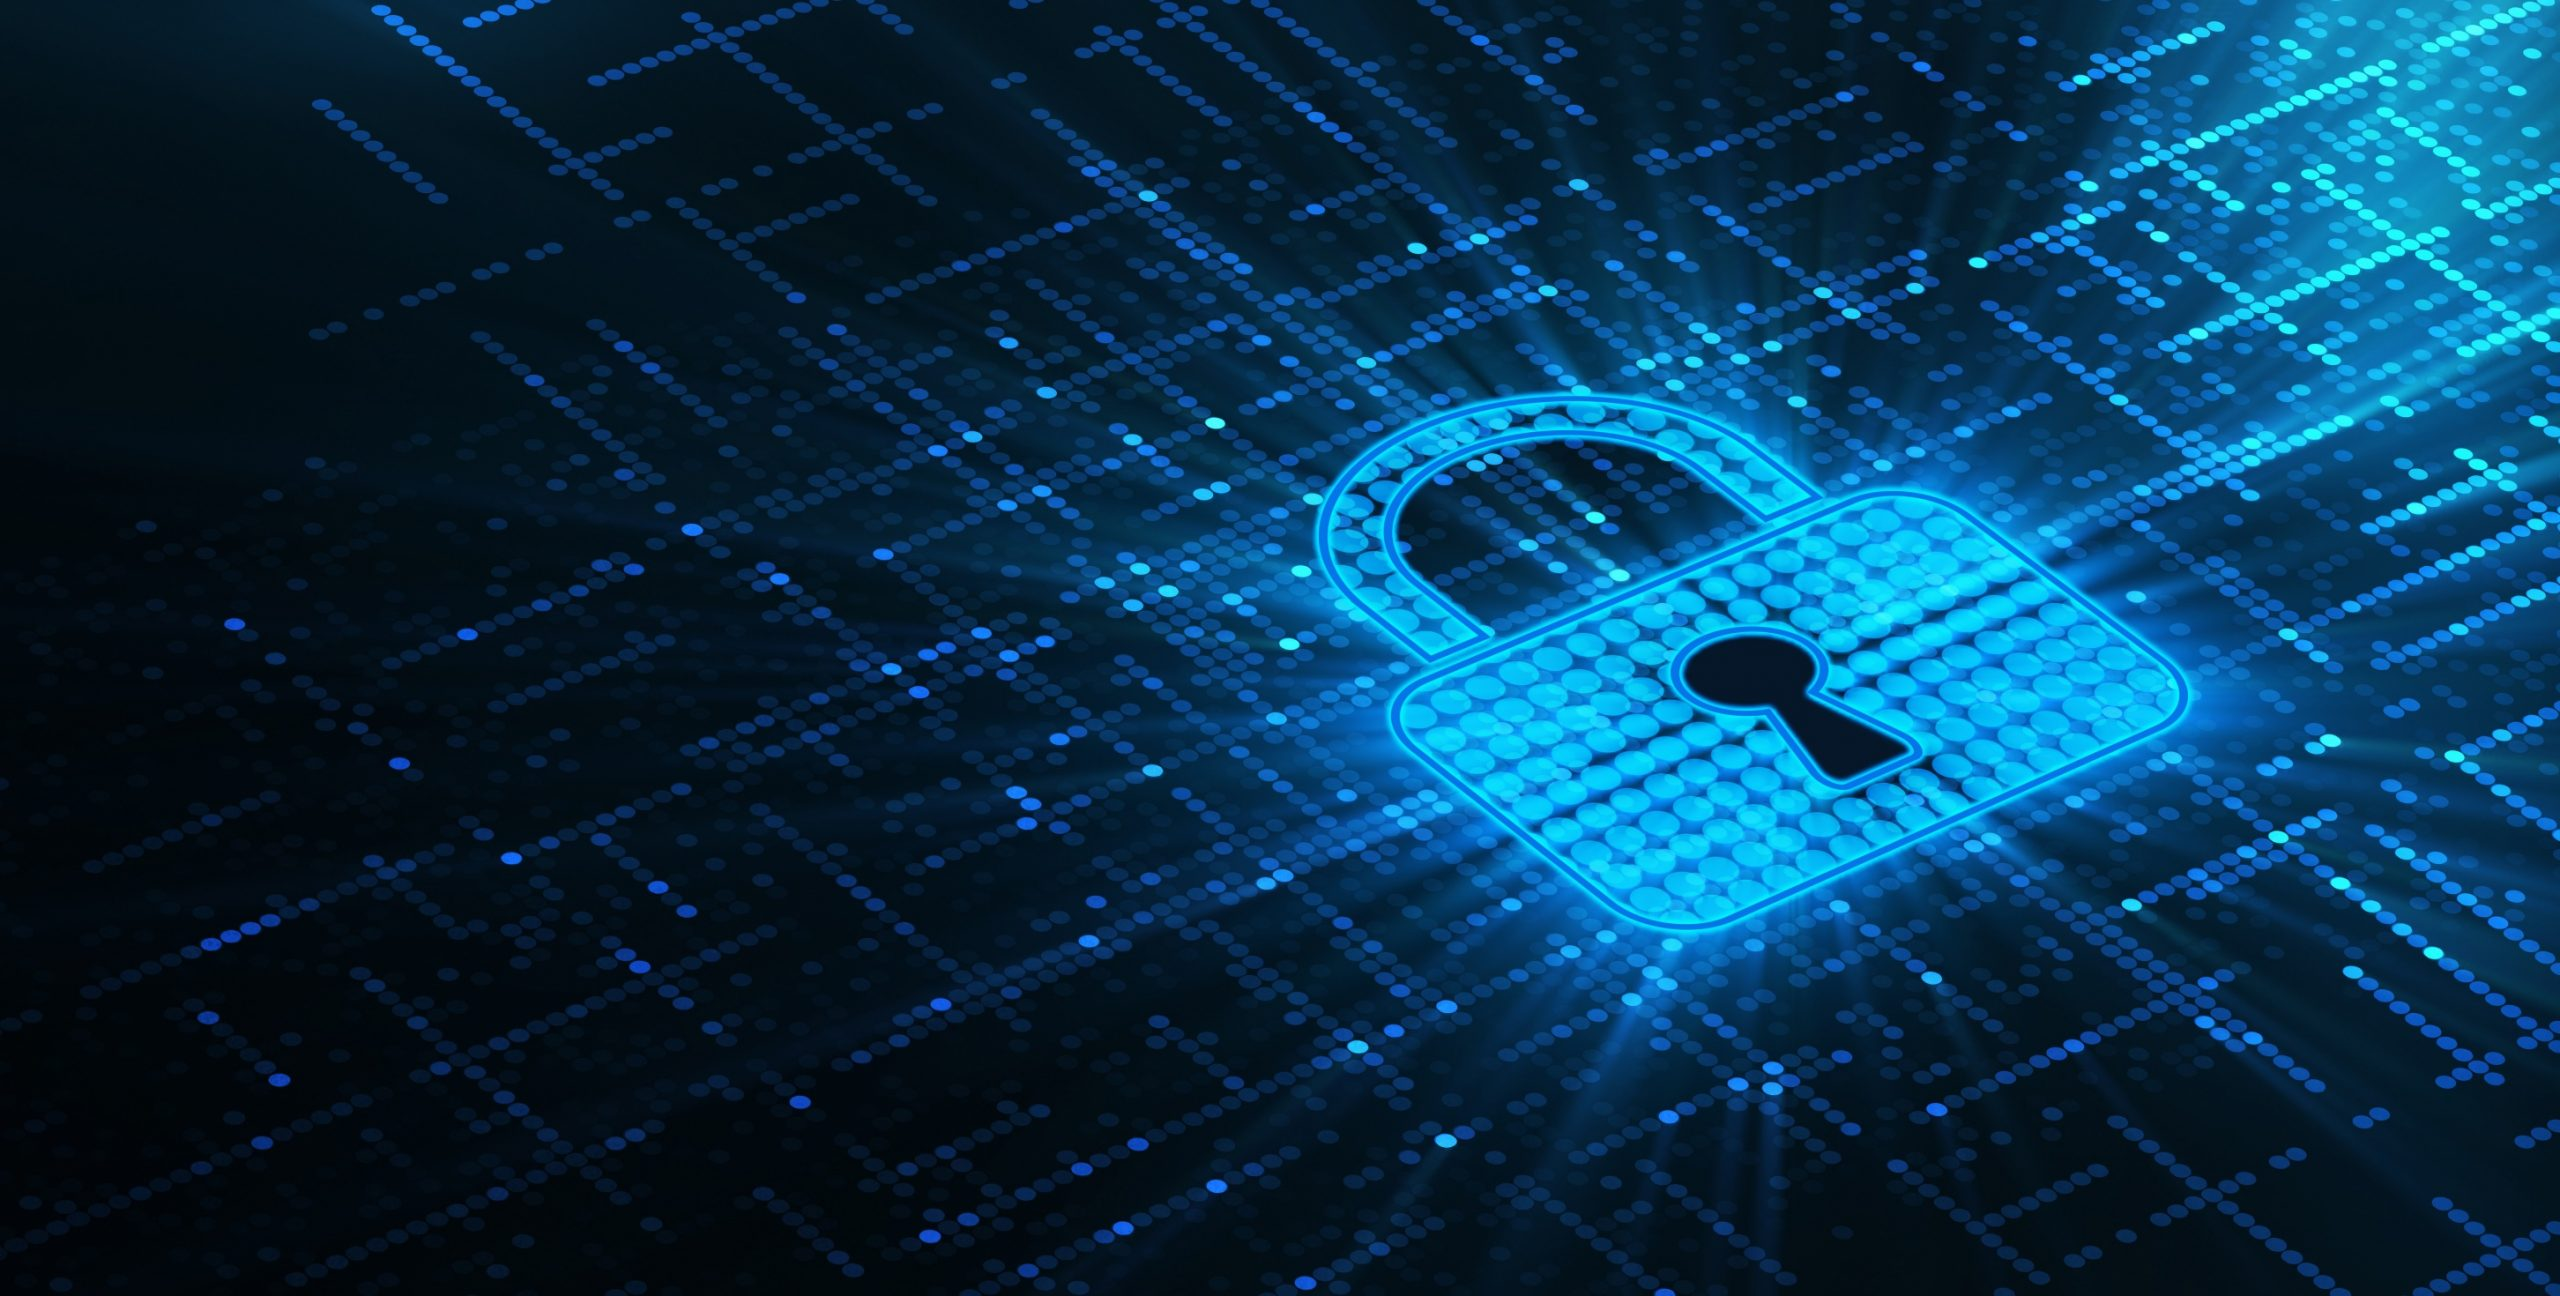 7 Tips for Securing Your Small Business Network